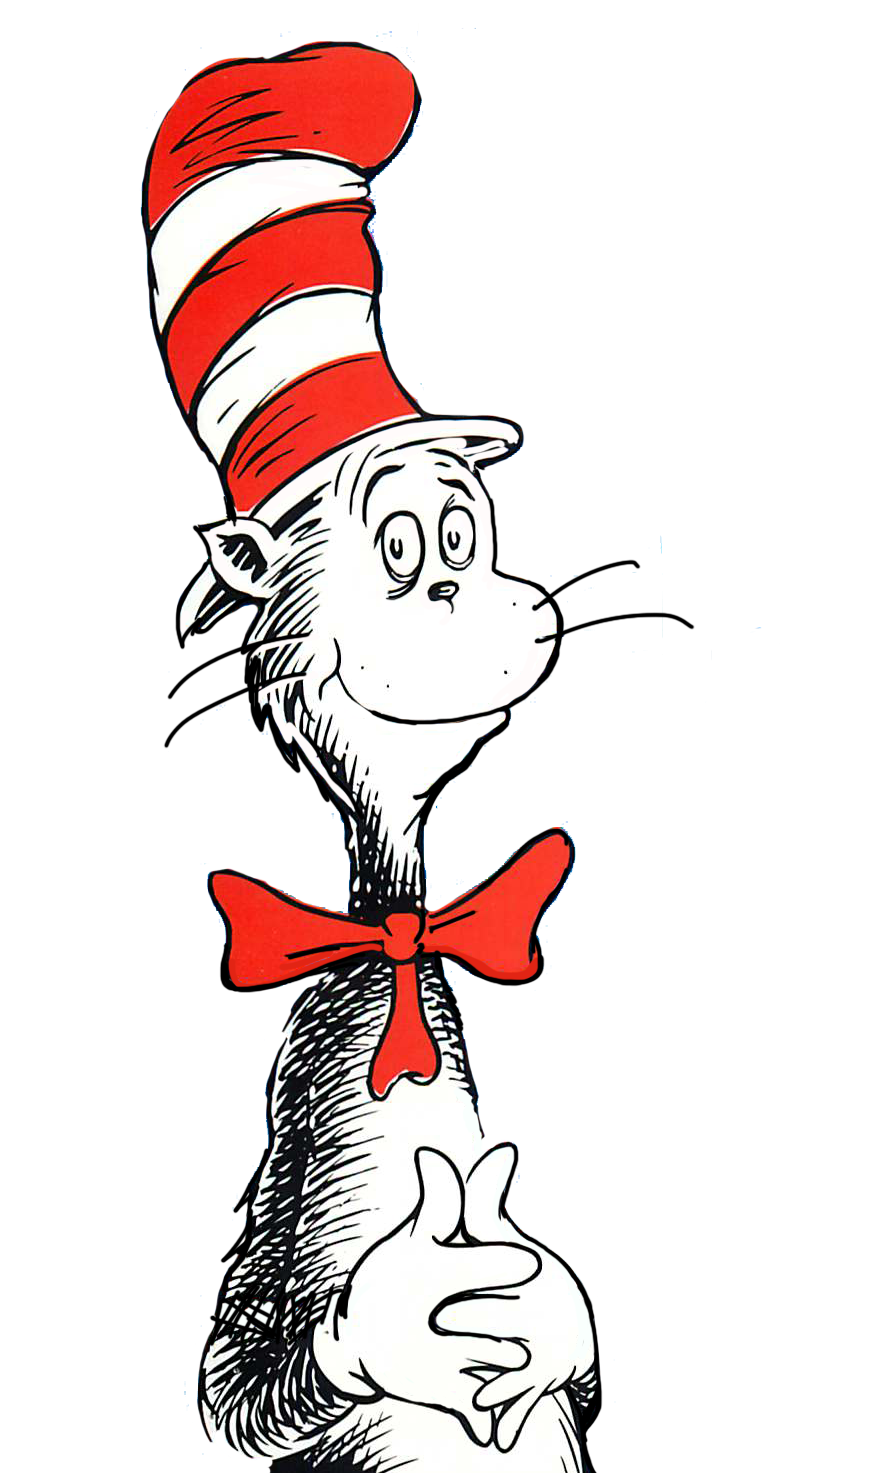 Free Cat In The Hat Transparent, Download Free Clip Art.